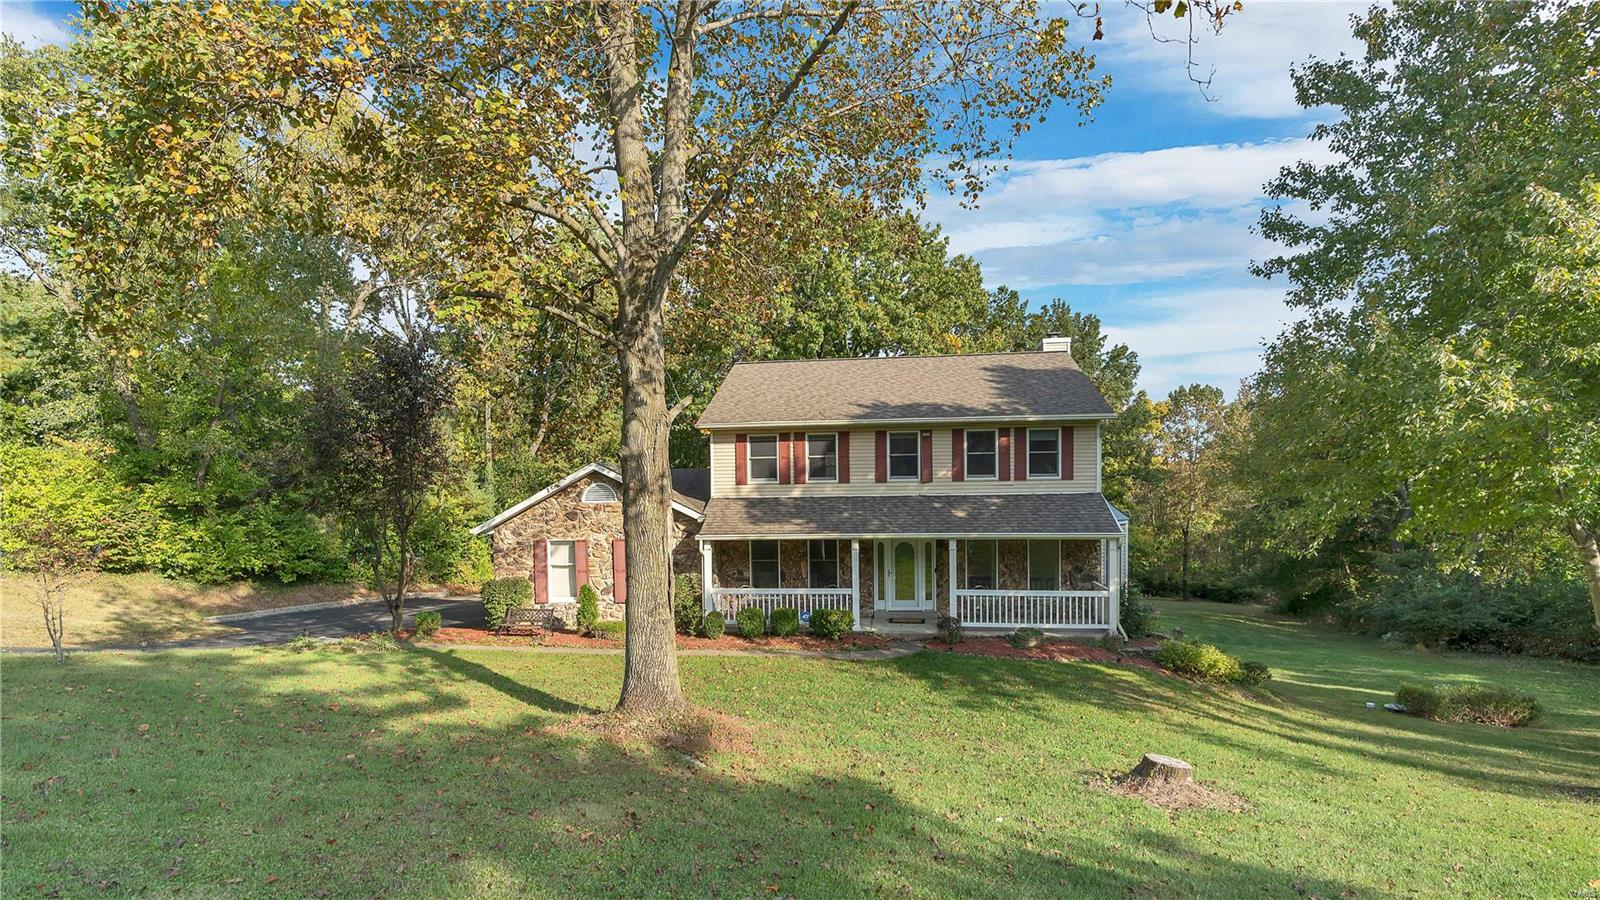 14744 Philip Meadows Property Photo - Florissant, MO real estate listing